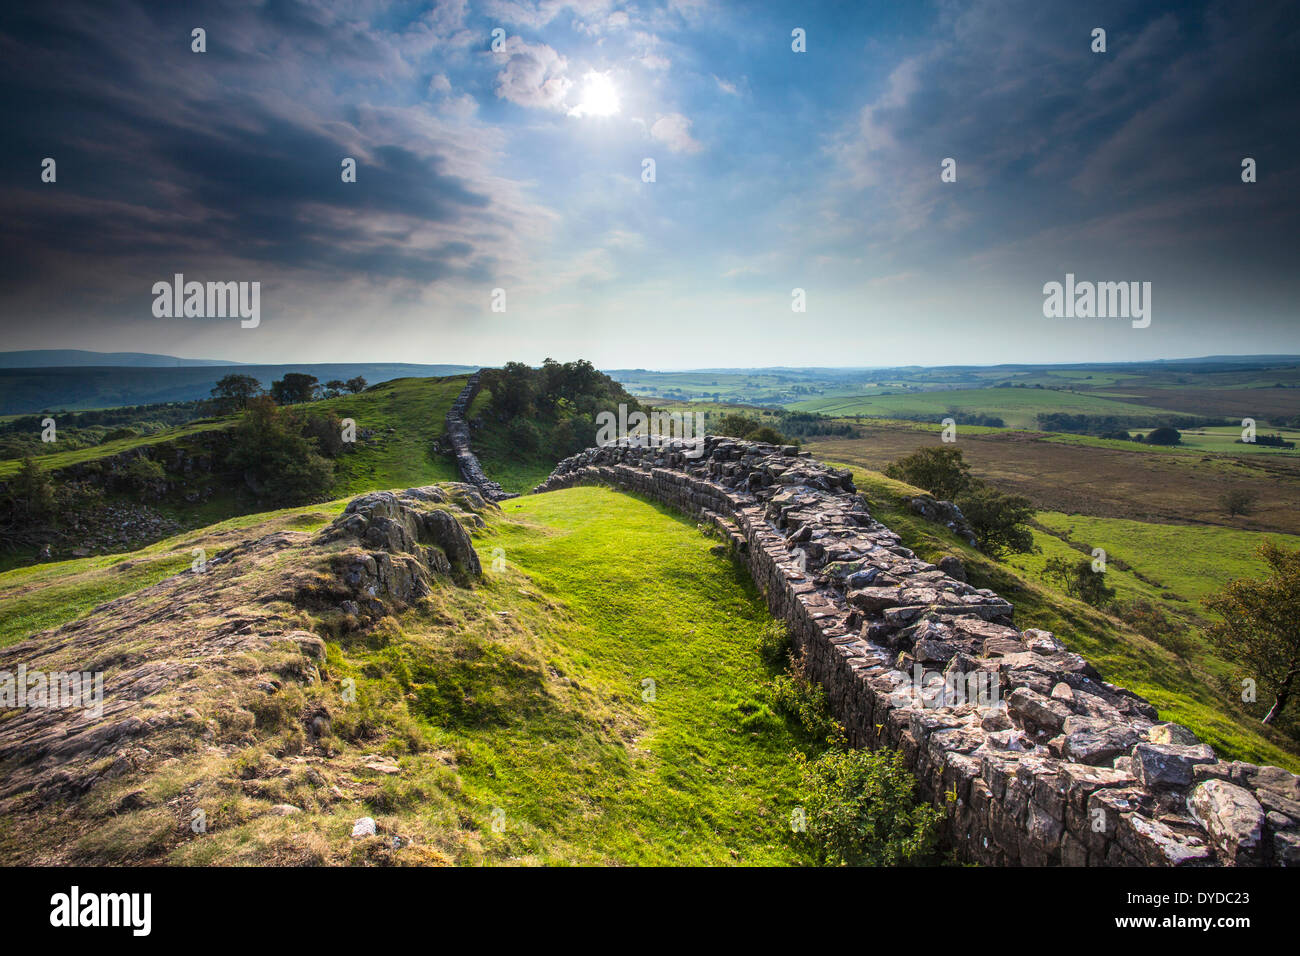 Hadrian's wall at Walltown Crags in Northumberland. Stock Photo